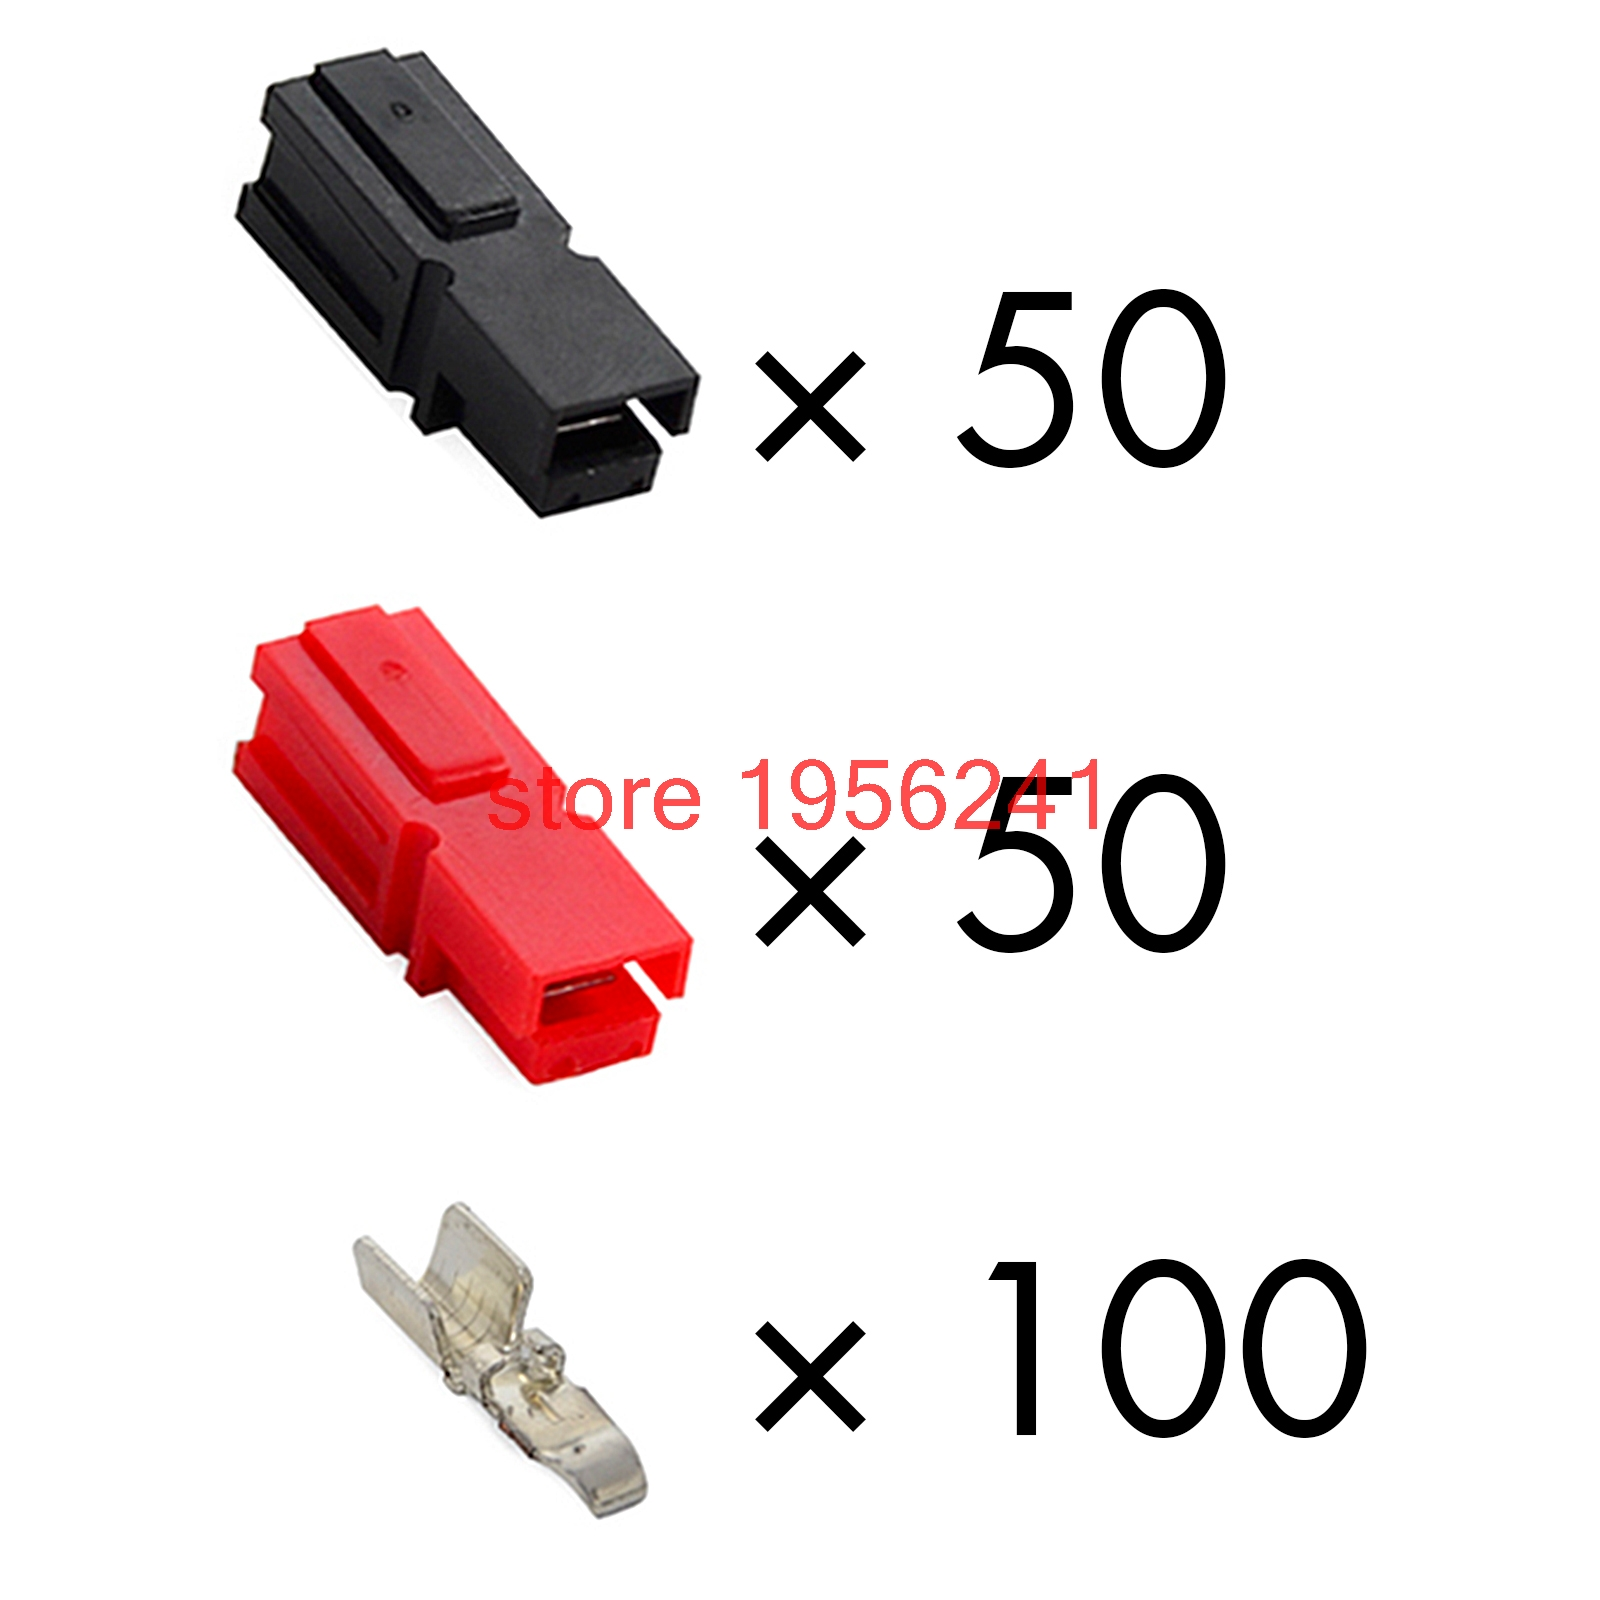 45A Amp 600V Power Marine Connector Pole 50Pair Black Red Interlocking Plugs 100PCS Terminals For Powerpole